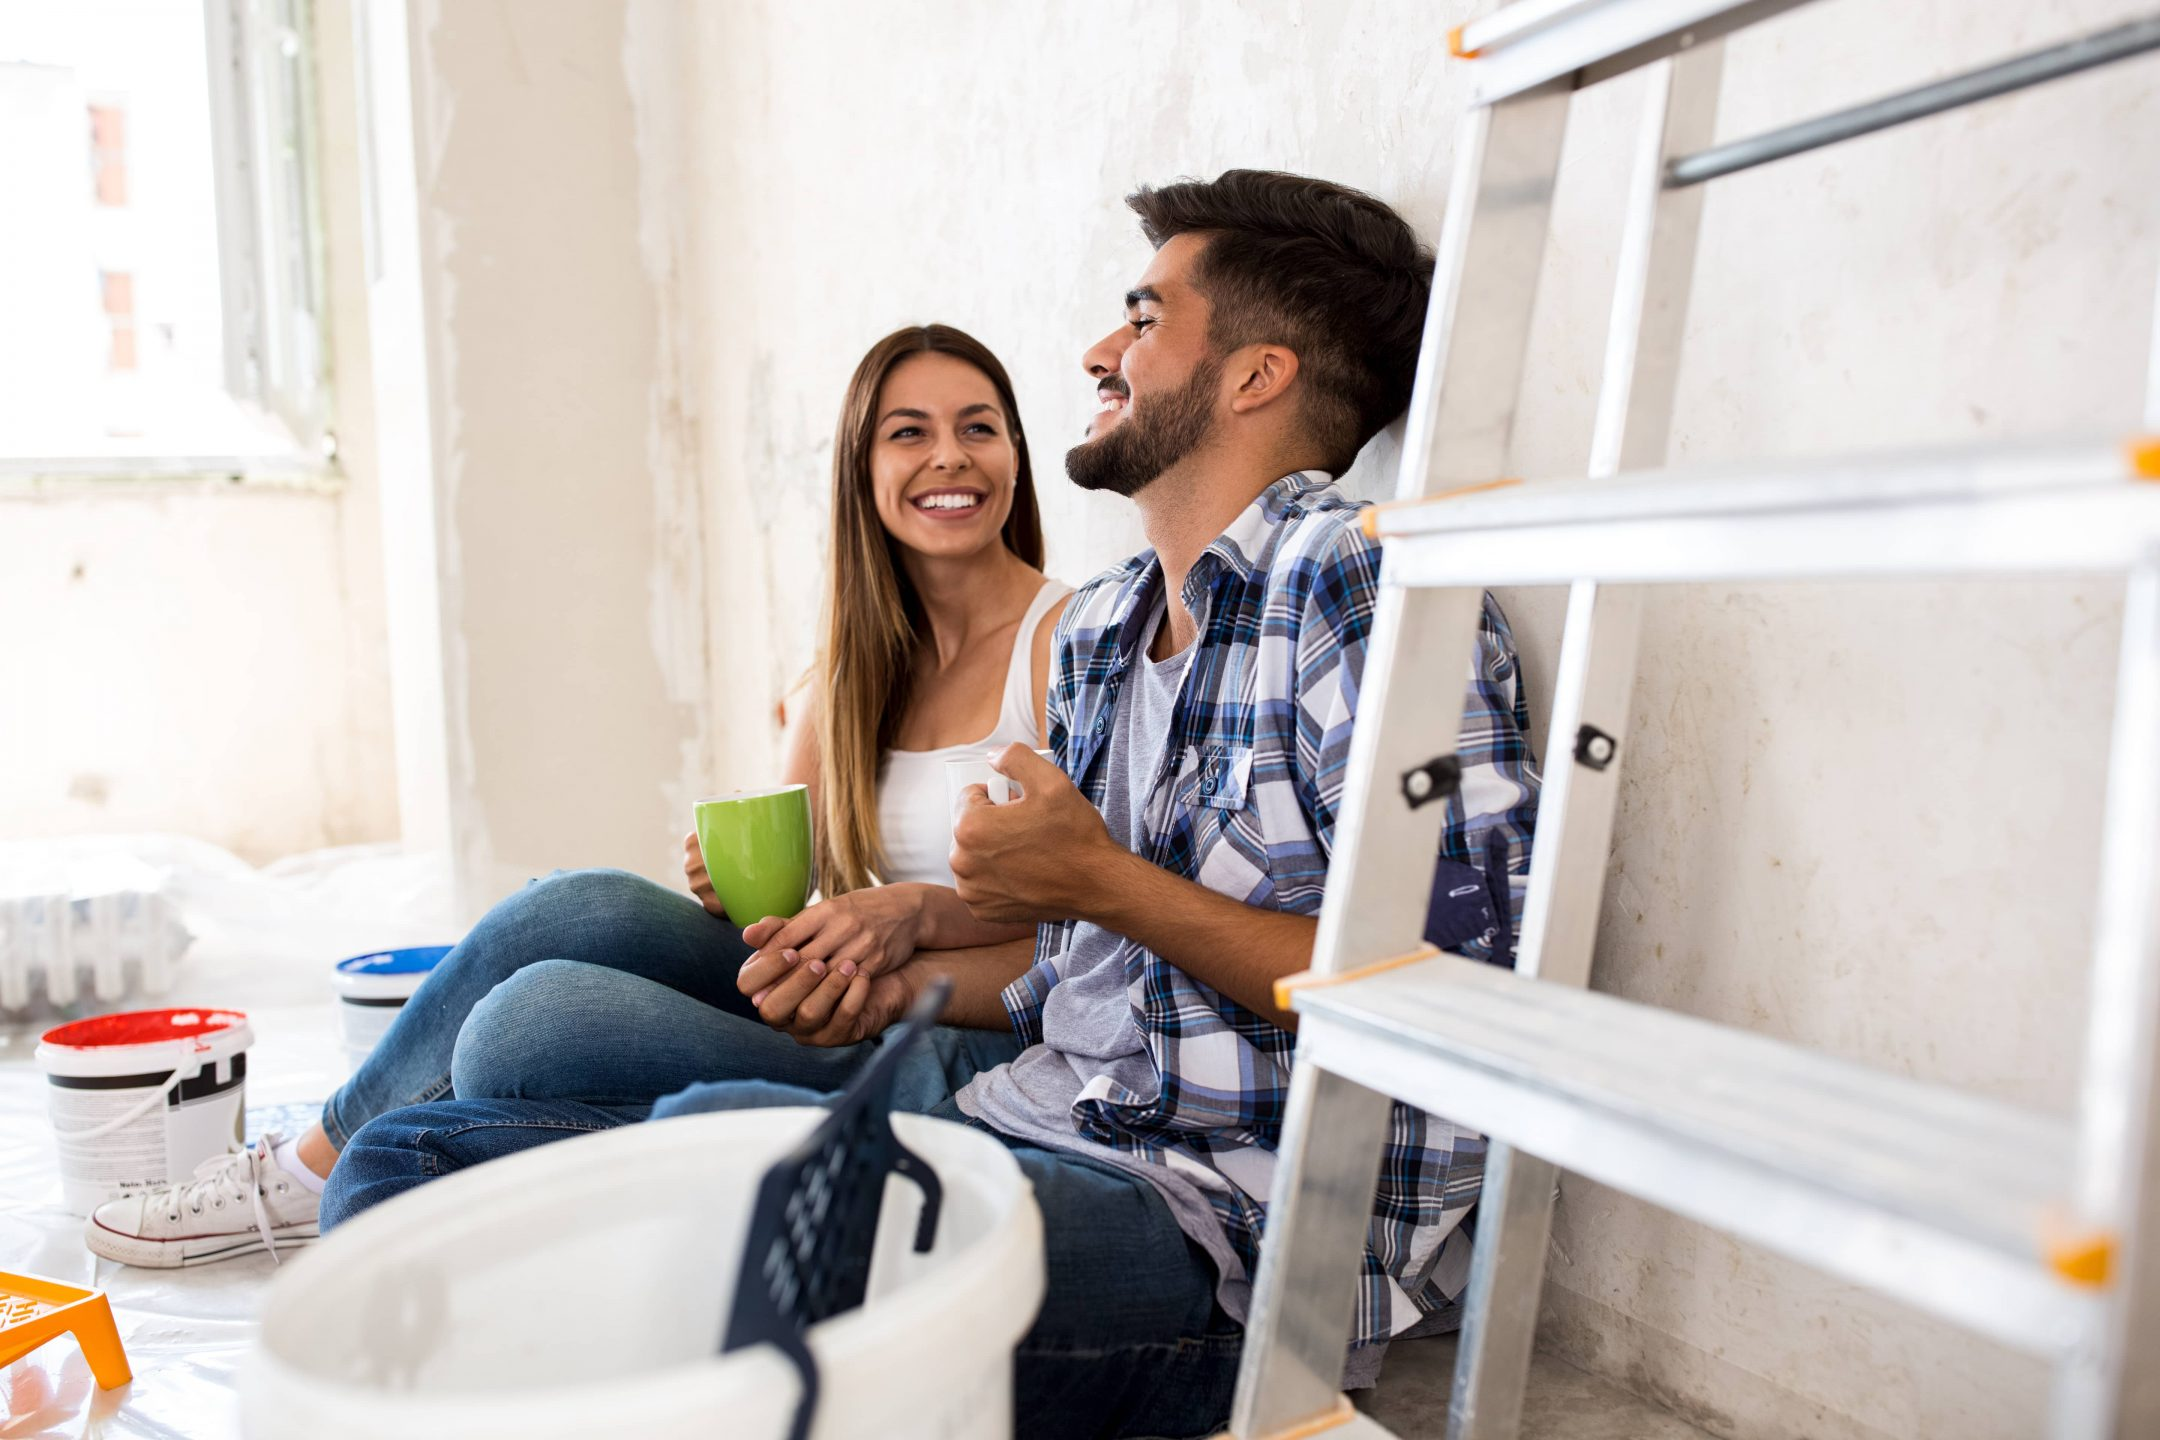 Young couple sitting on the floor taking a break from the home improvement project they have been working on.